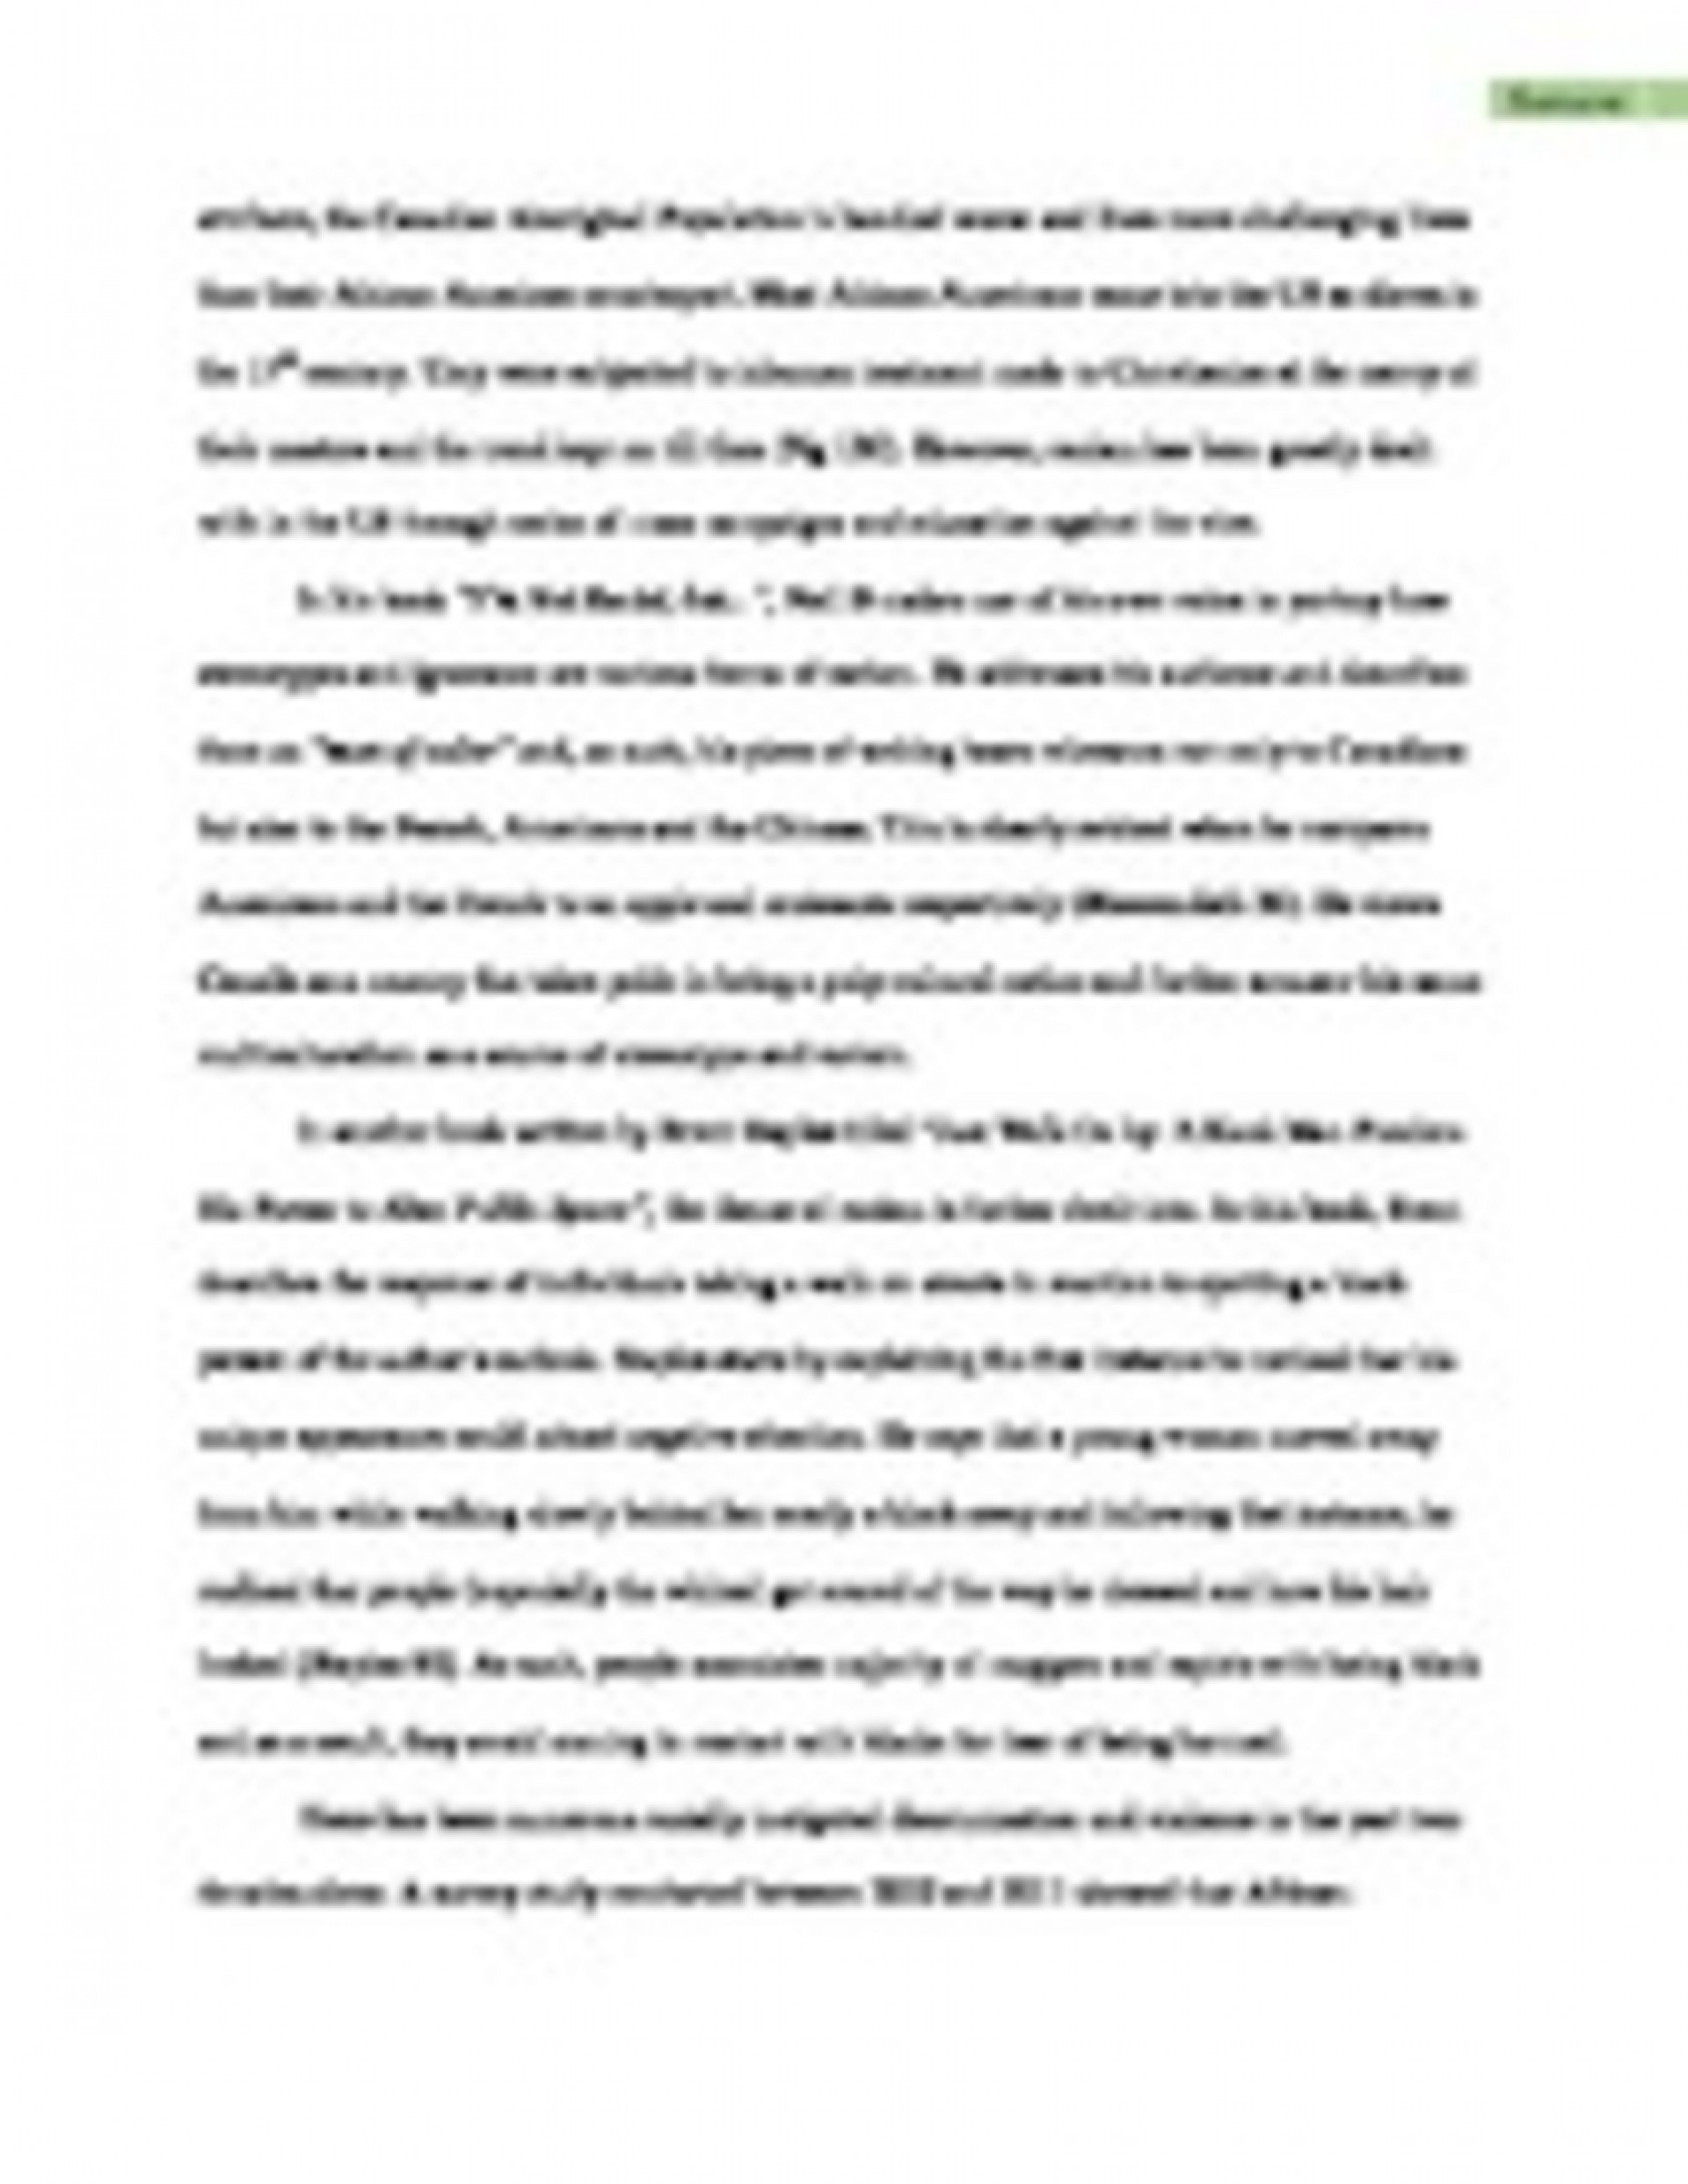 006 Essay Example Black Lives Matter About Racism On Made Simple College Stanford Admission Beautiful Topics 1920